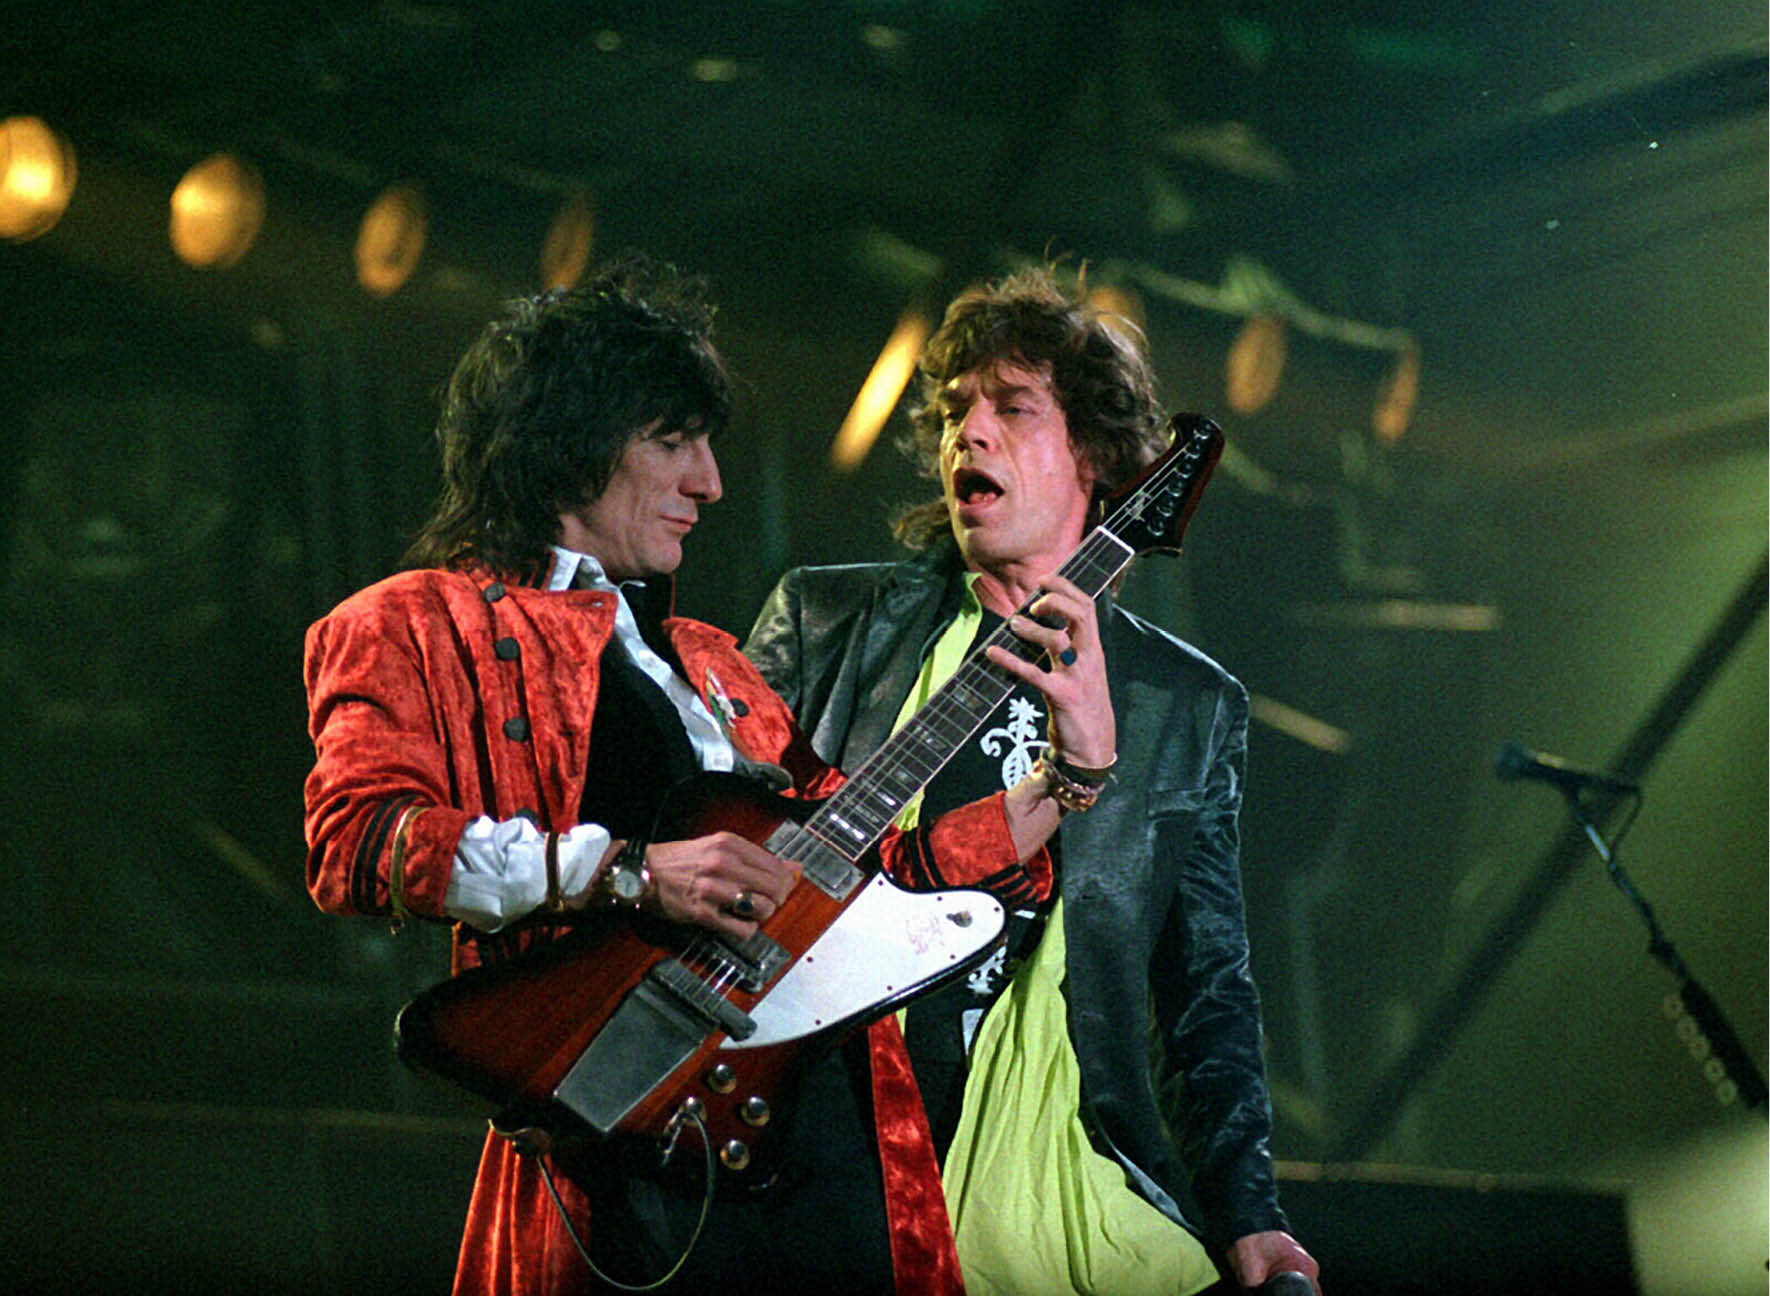 Mandatory Credit: Photo by Roy Haverkamp/Newspix / Rex Features ( 874066a ) The Rolling Stones - Ronnie Wood and Mick Jagger The Rolling Stones in concert during Australian leg of Voodoo lounge tour, Sydney Cricket Ground, Sydney, Australia - 02 Apr 1995